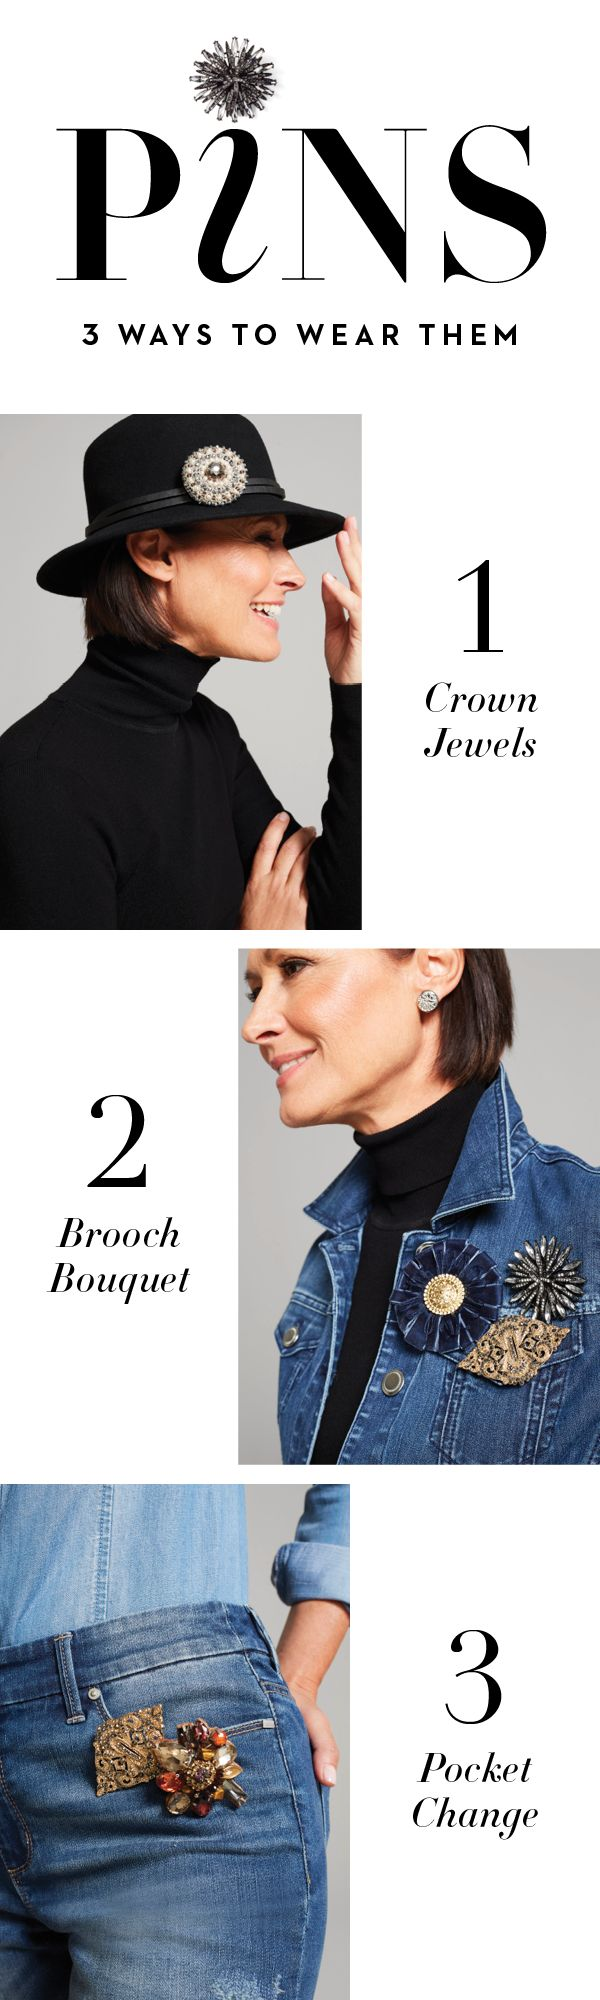 Broaches are more versatile than you might think. Use these statement makers to customize your look, from head to toe.